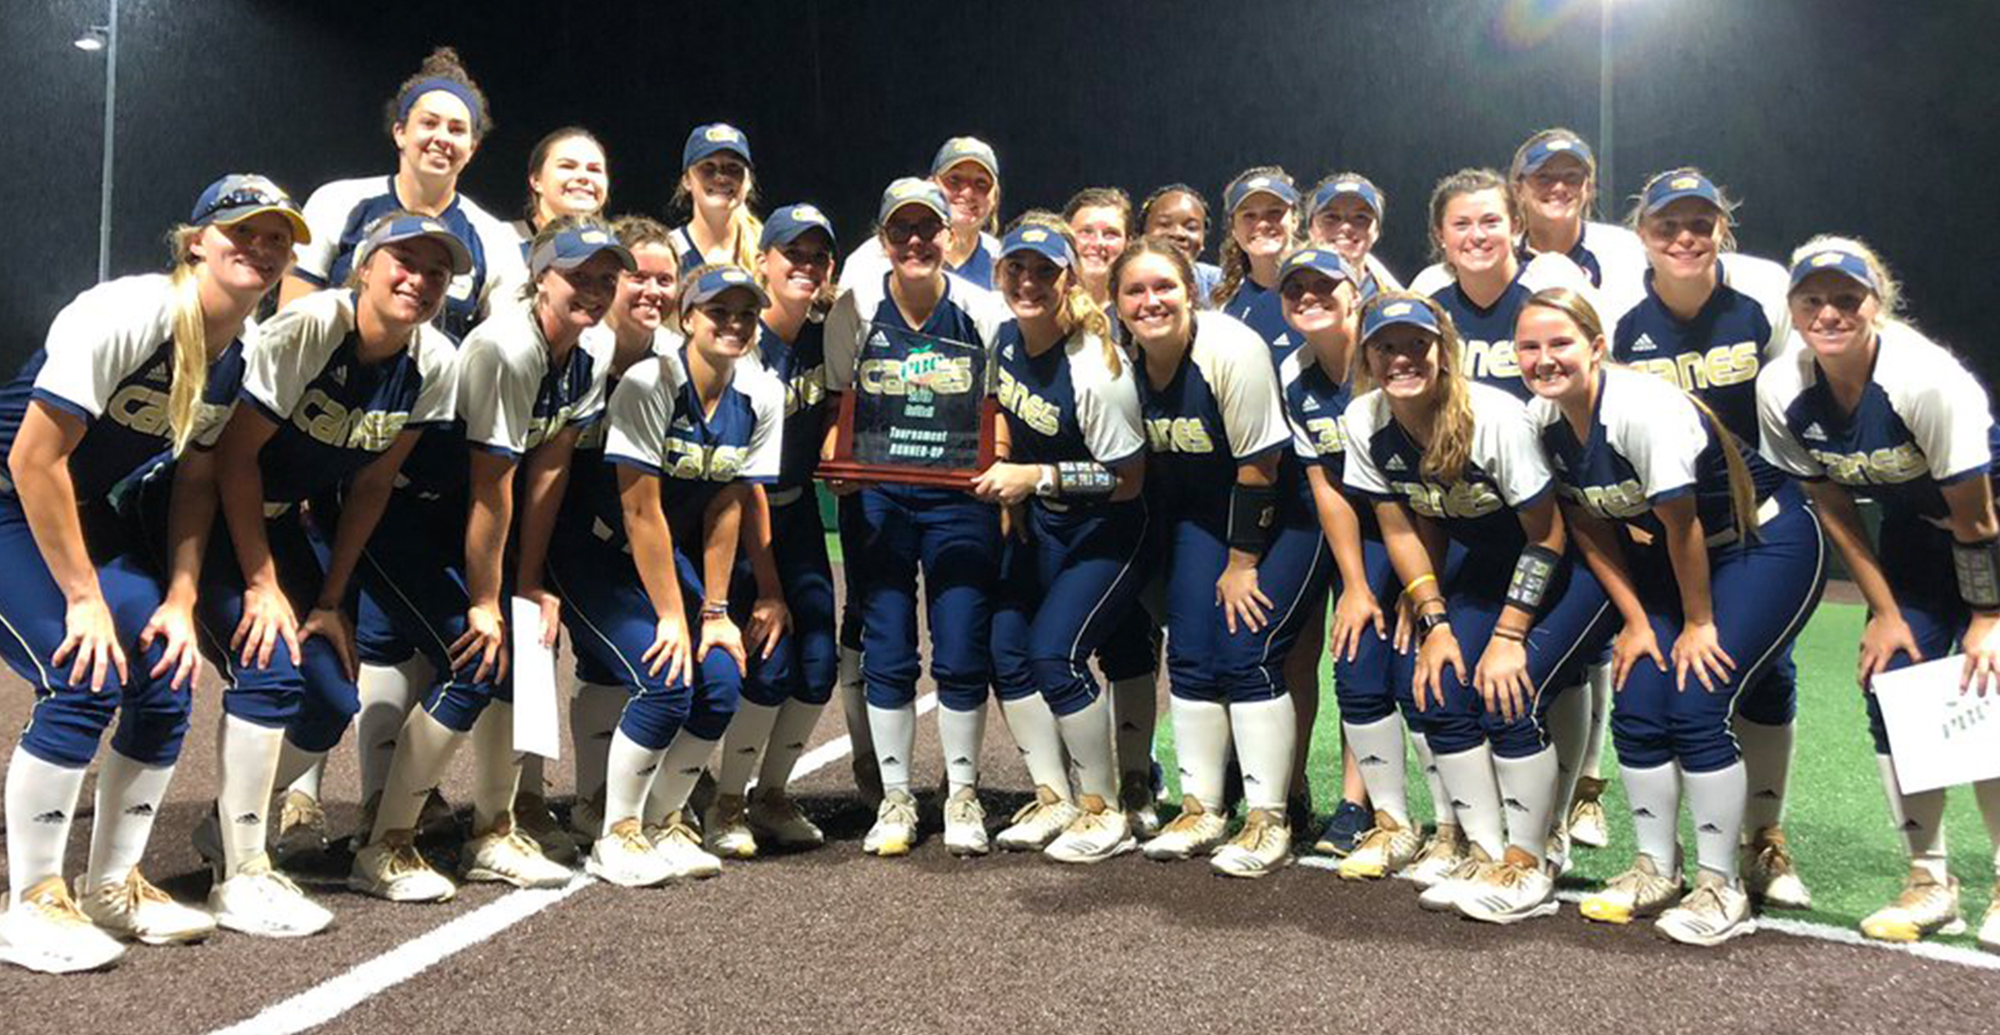 Lady Canes Finish Runner-Up At PBC Tournament